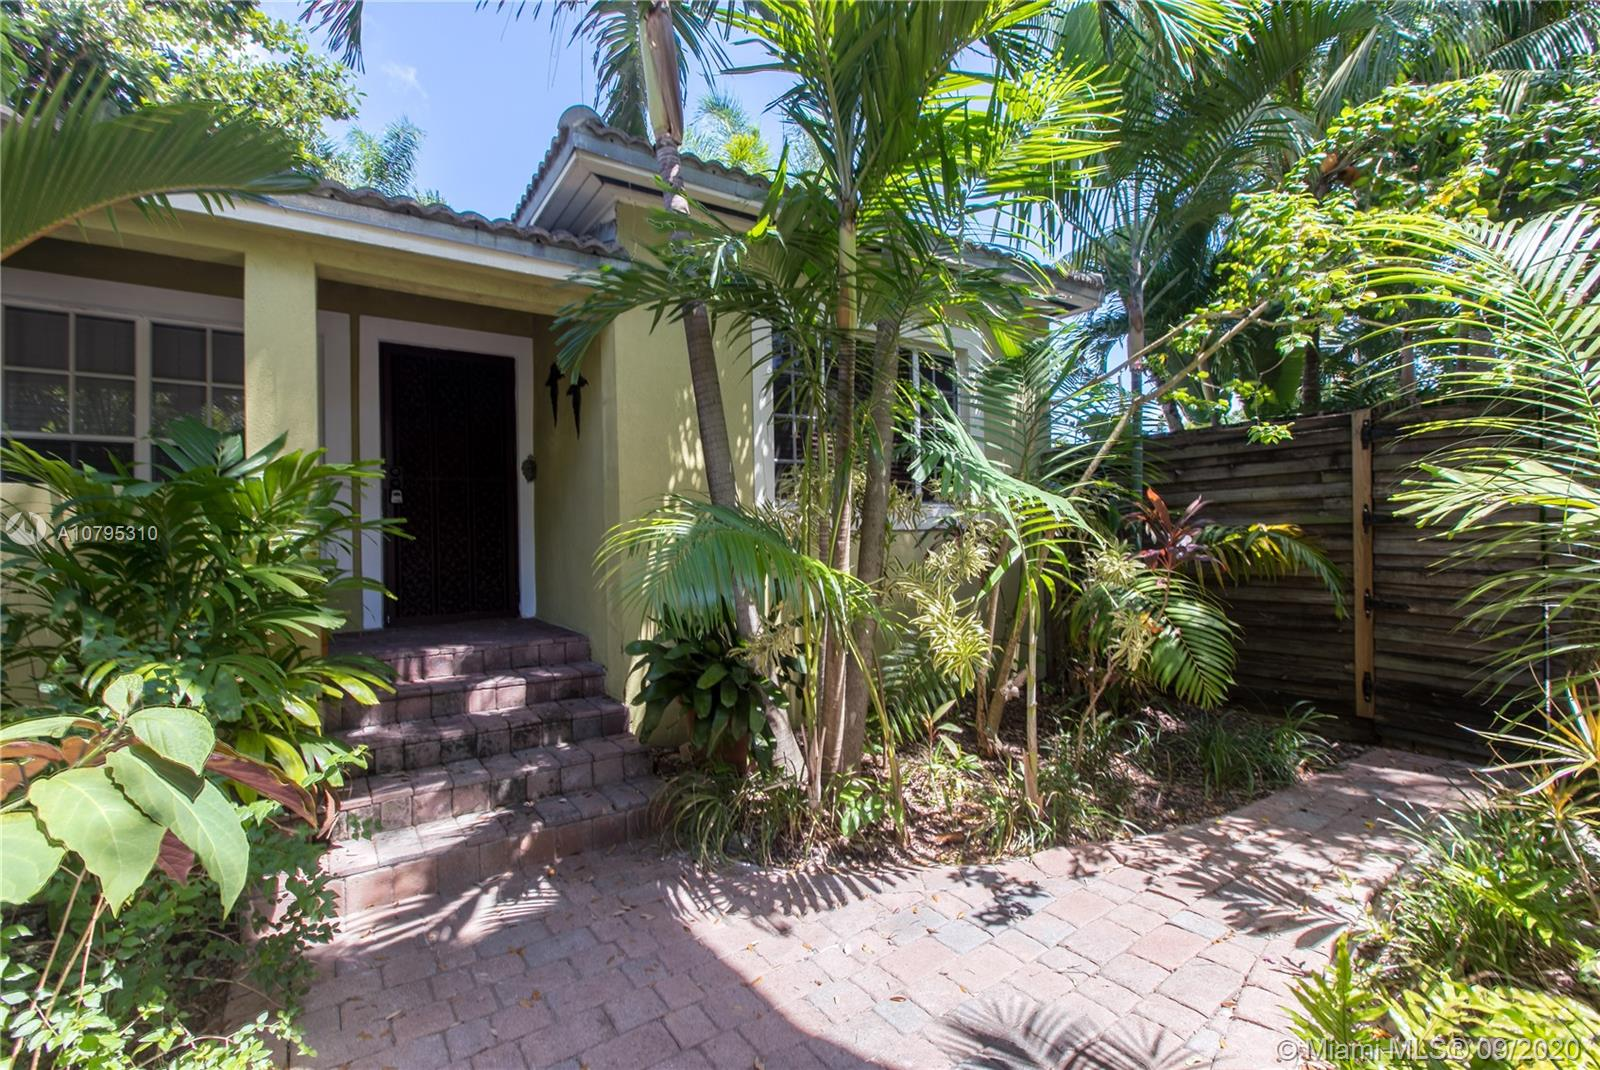 Charming Coconut Grove home located on a quiet dead-end street. 3 bedroom/2 bath; 7000 sqft lot with 2,022+ sqft of living space; larger than tax roll per seller.  Entertain next to a large 8' deep sparkling Salt Water swimming pool, surrounded by lush landscaping, a wrap around paver patio and courtyard with concrete shed. The location is ideal. Walking distance to the Biscayne Bay and area parks. Short drive to Brickell, Downtown, Coral Gables, South Miami and the University of Miami; easy access to the Palmetto Expressway and I-95. A must see; schedule a showing today.